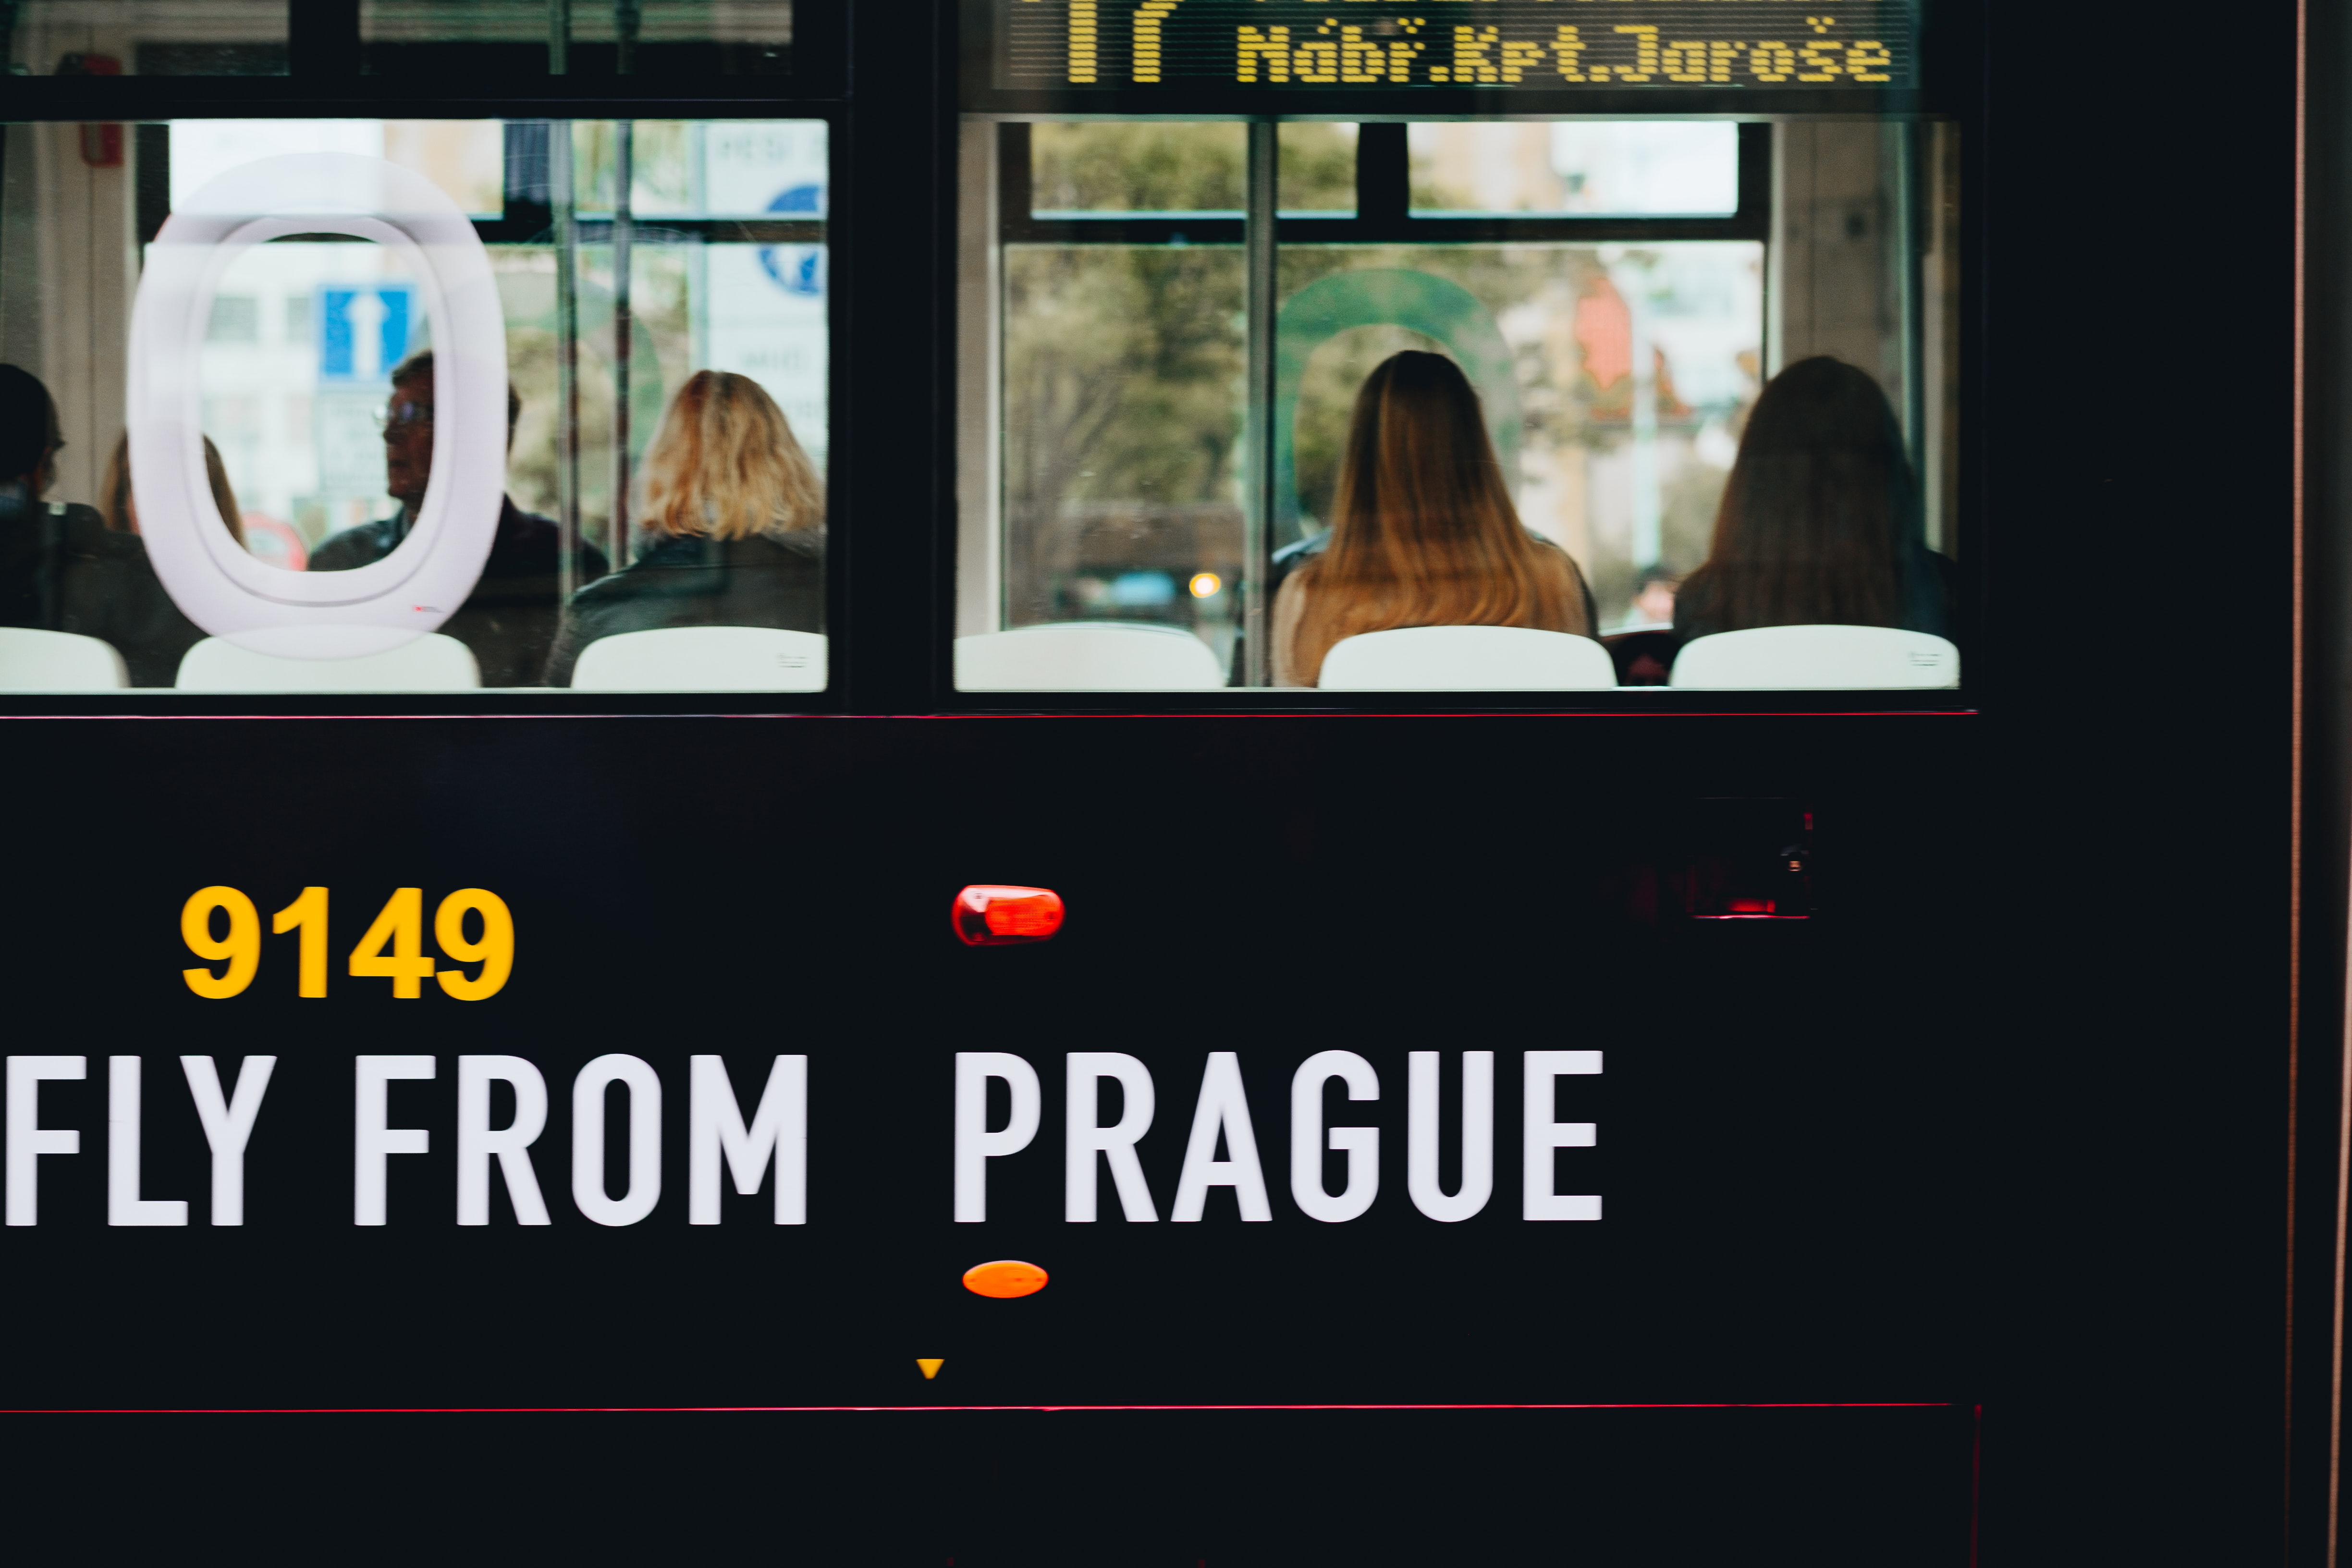 fly from prague text